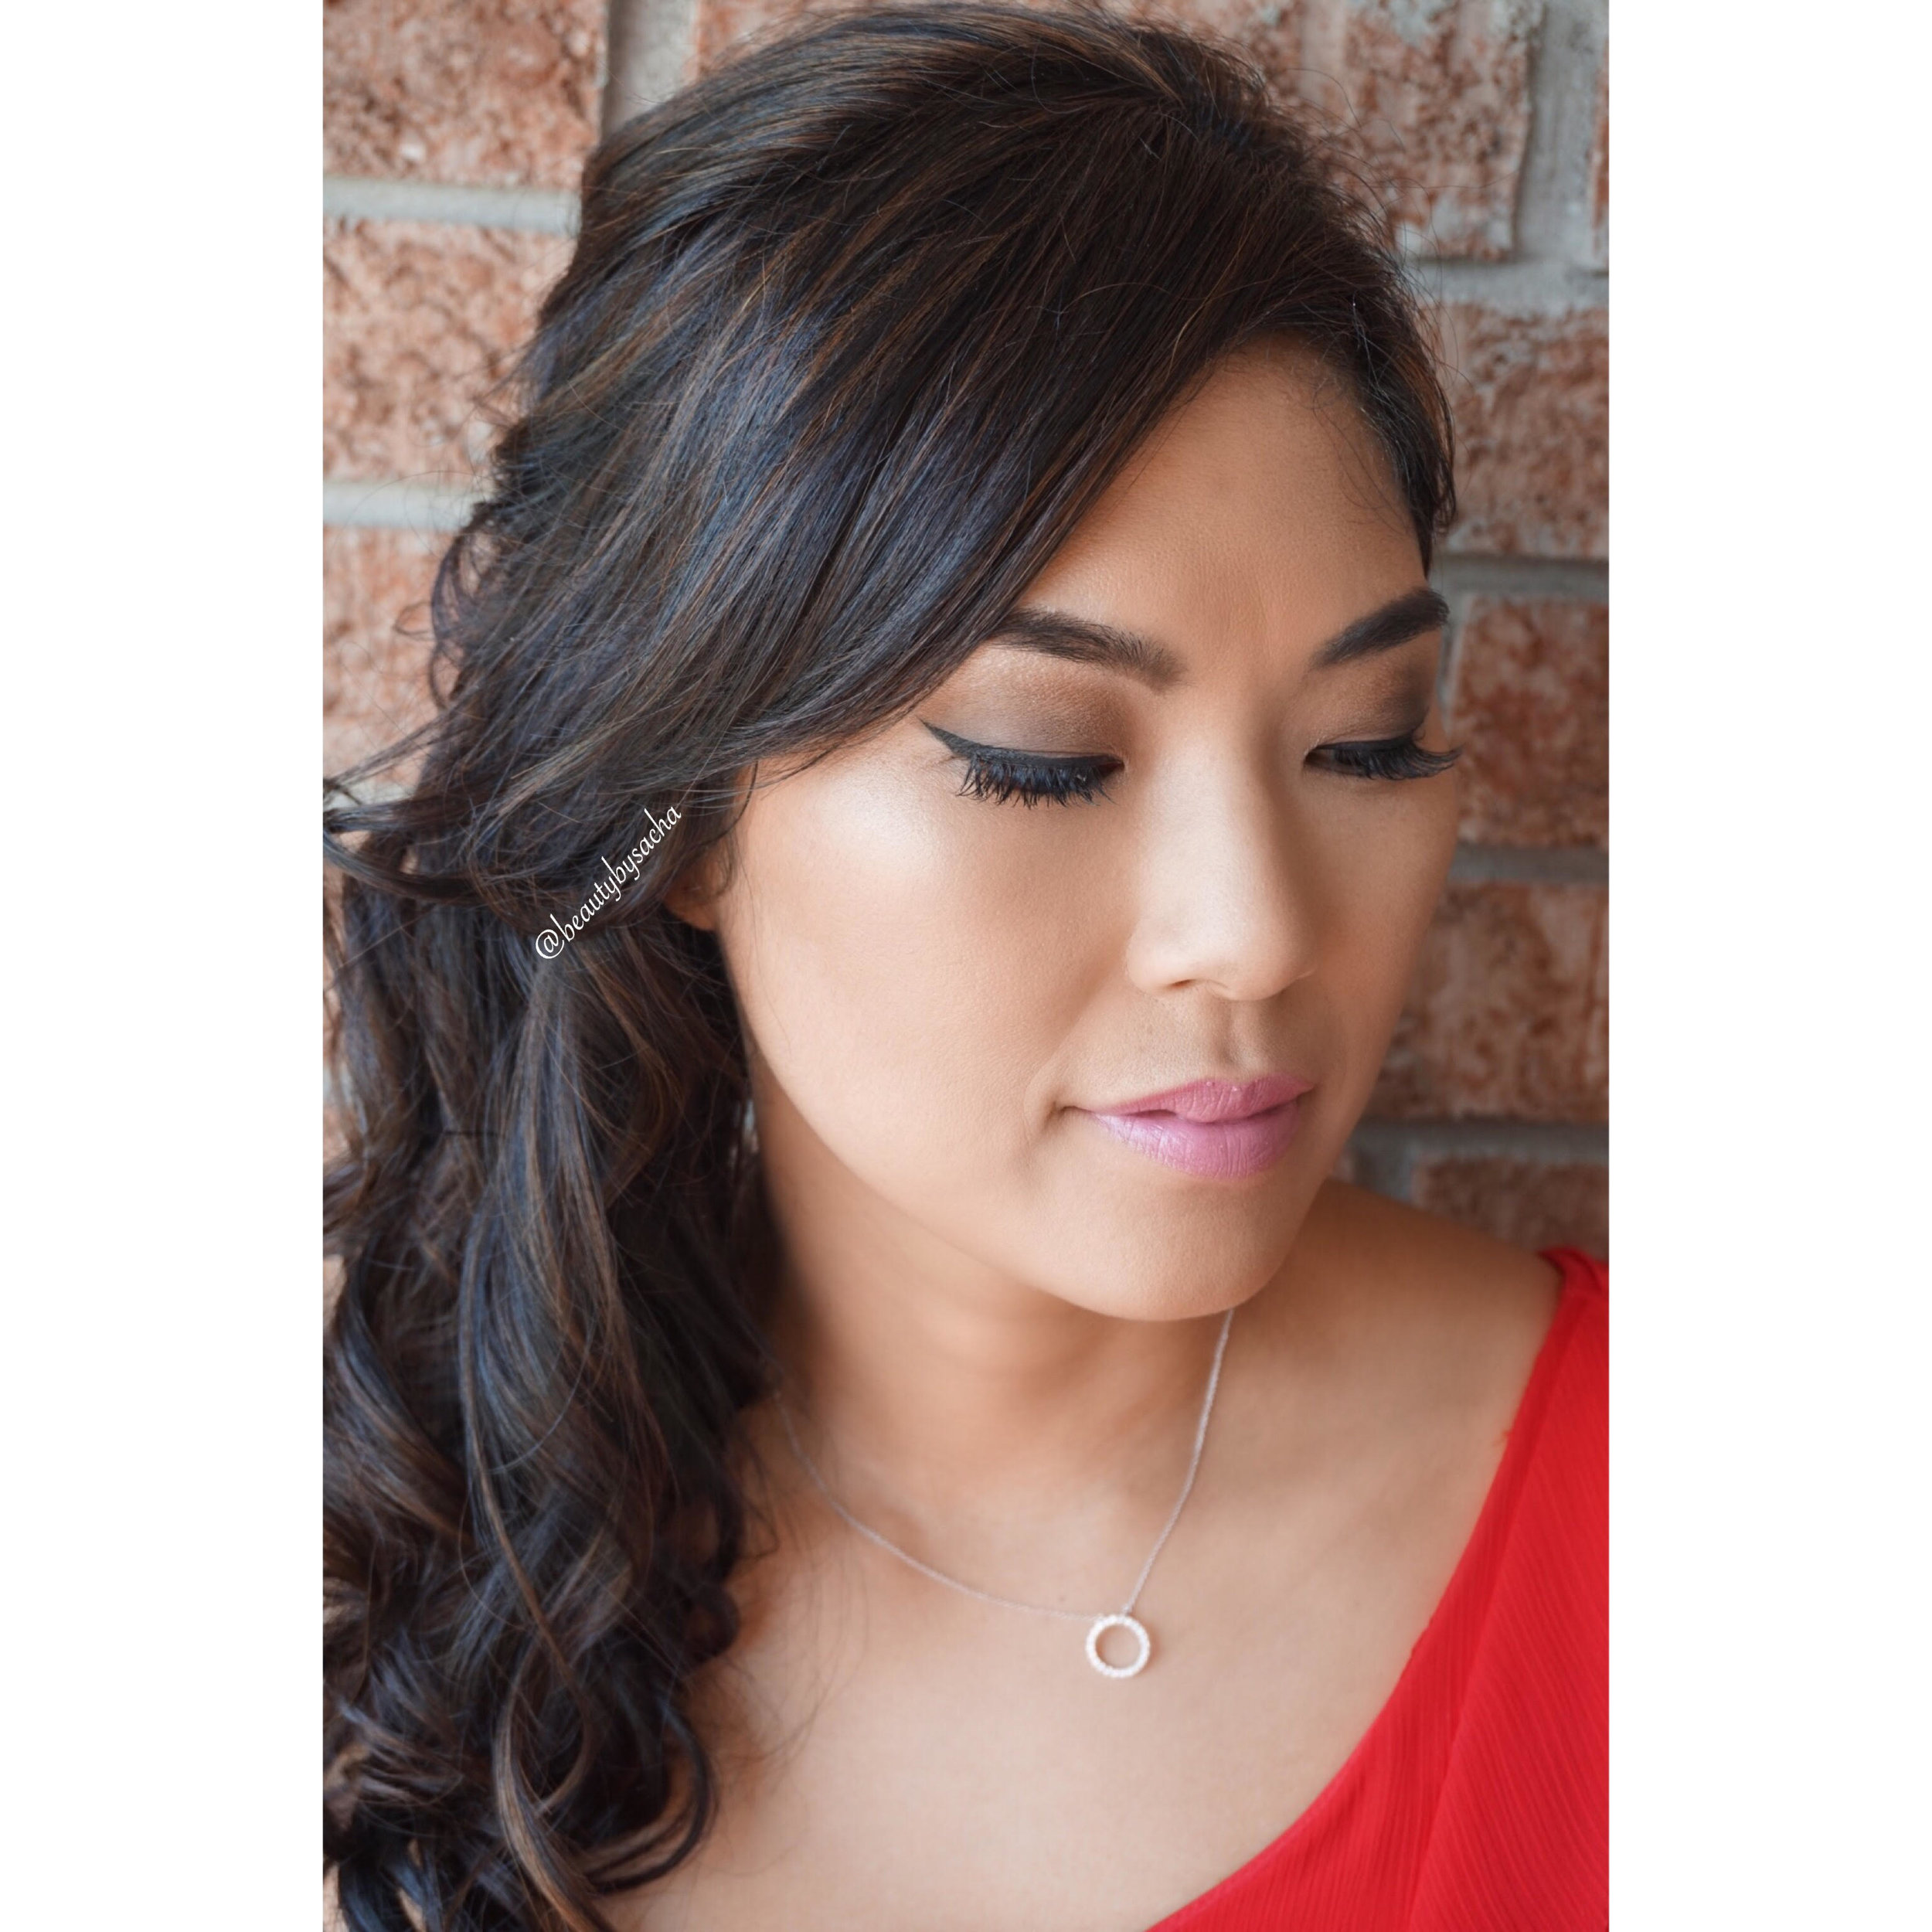 Beauty by Sacha - Bridal Party Makeup & Hair